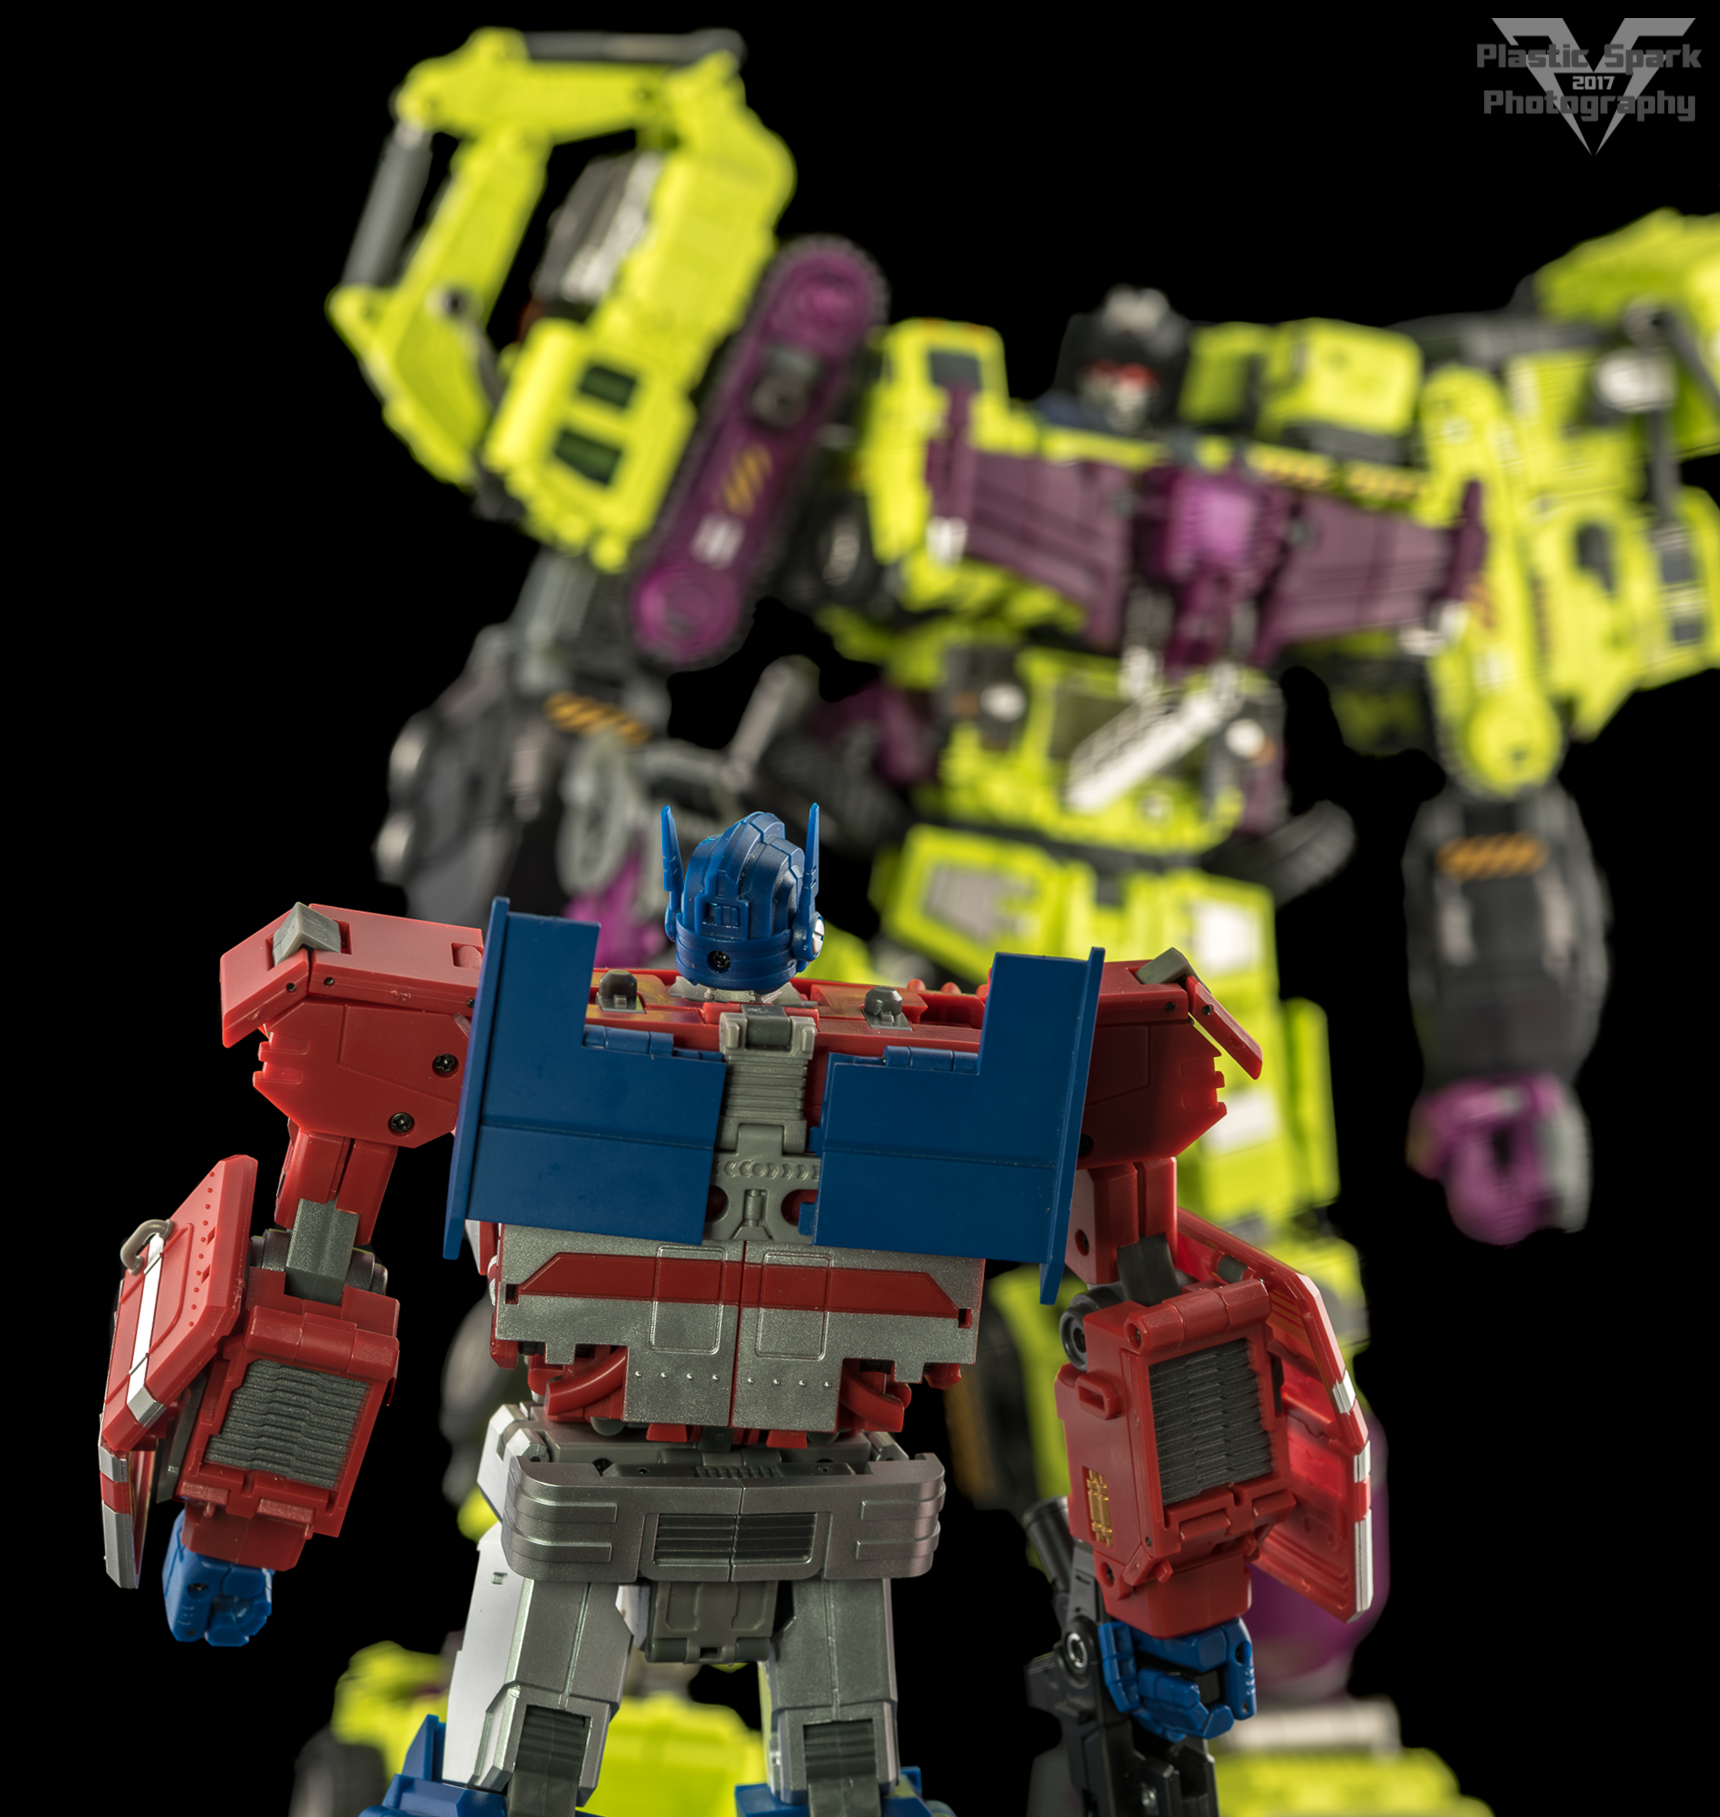 Generation-Toy-Gravity-Builder-(33-of-34).png